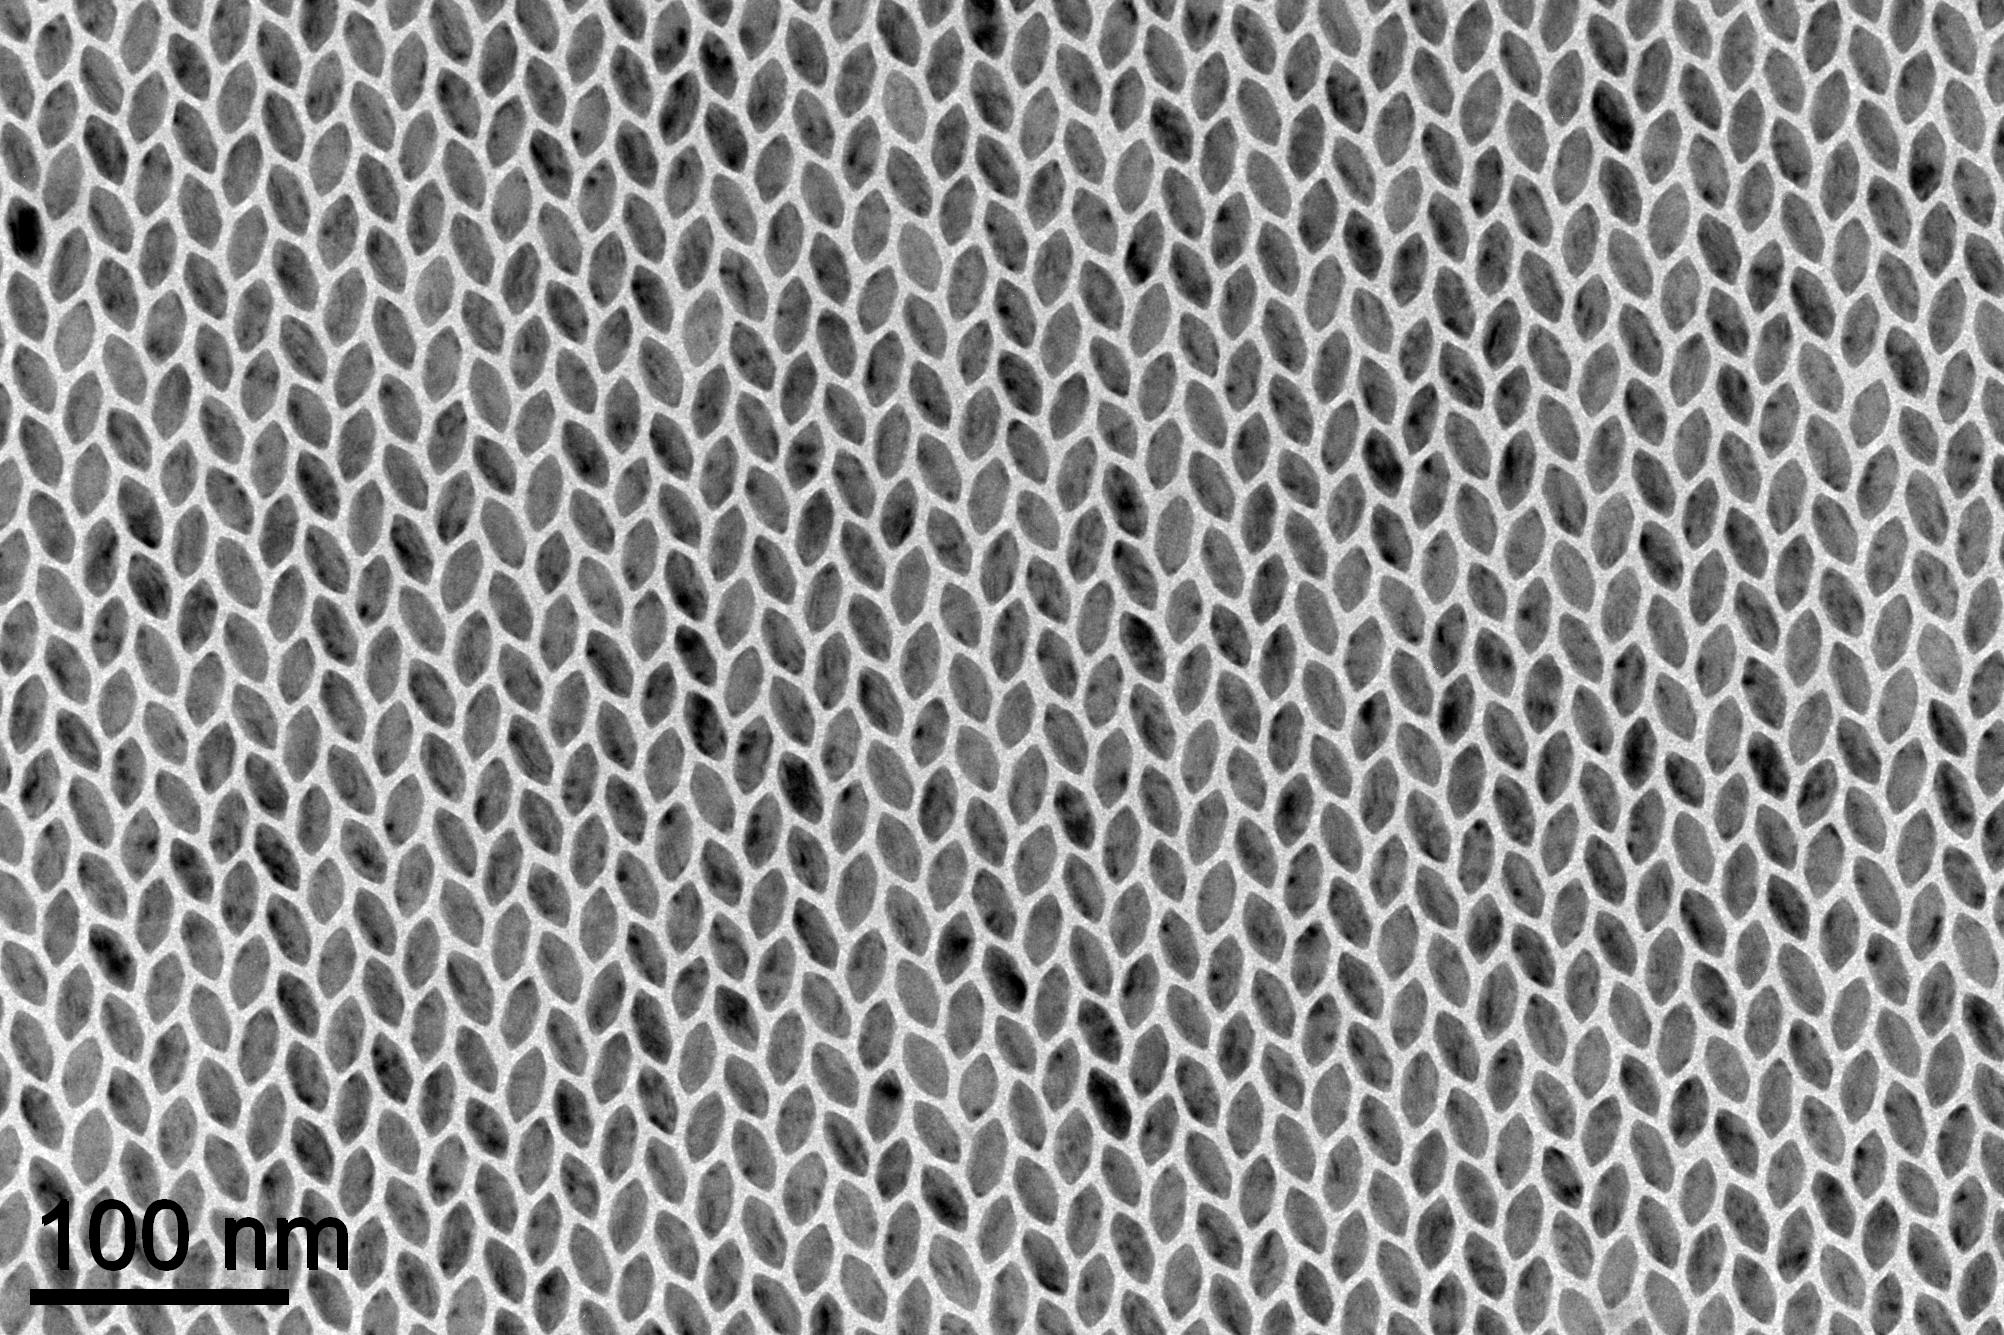 Hexagon-shaped nanoplates arranged themselves into different crystal patterns, depending on the length of the sides of the hexagons. Long hexagons fit together in a grid like a stretched honeycomb, but researchers were surprised that hexagons whose sides were all the same lengths ended up in a herringbone pattern. University of Michigan engineering researchers helped figure out why, and the work could lead to a new tool to control how nanoparticles arrange themselves. Credit: Xingchen Ye, University of Pennsylvania